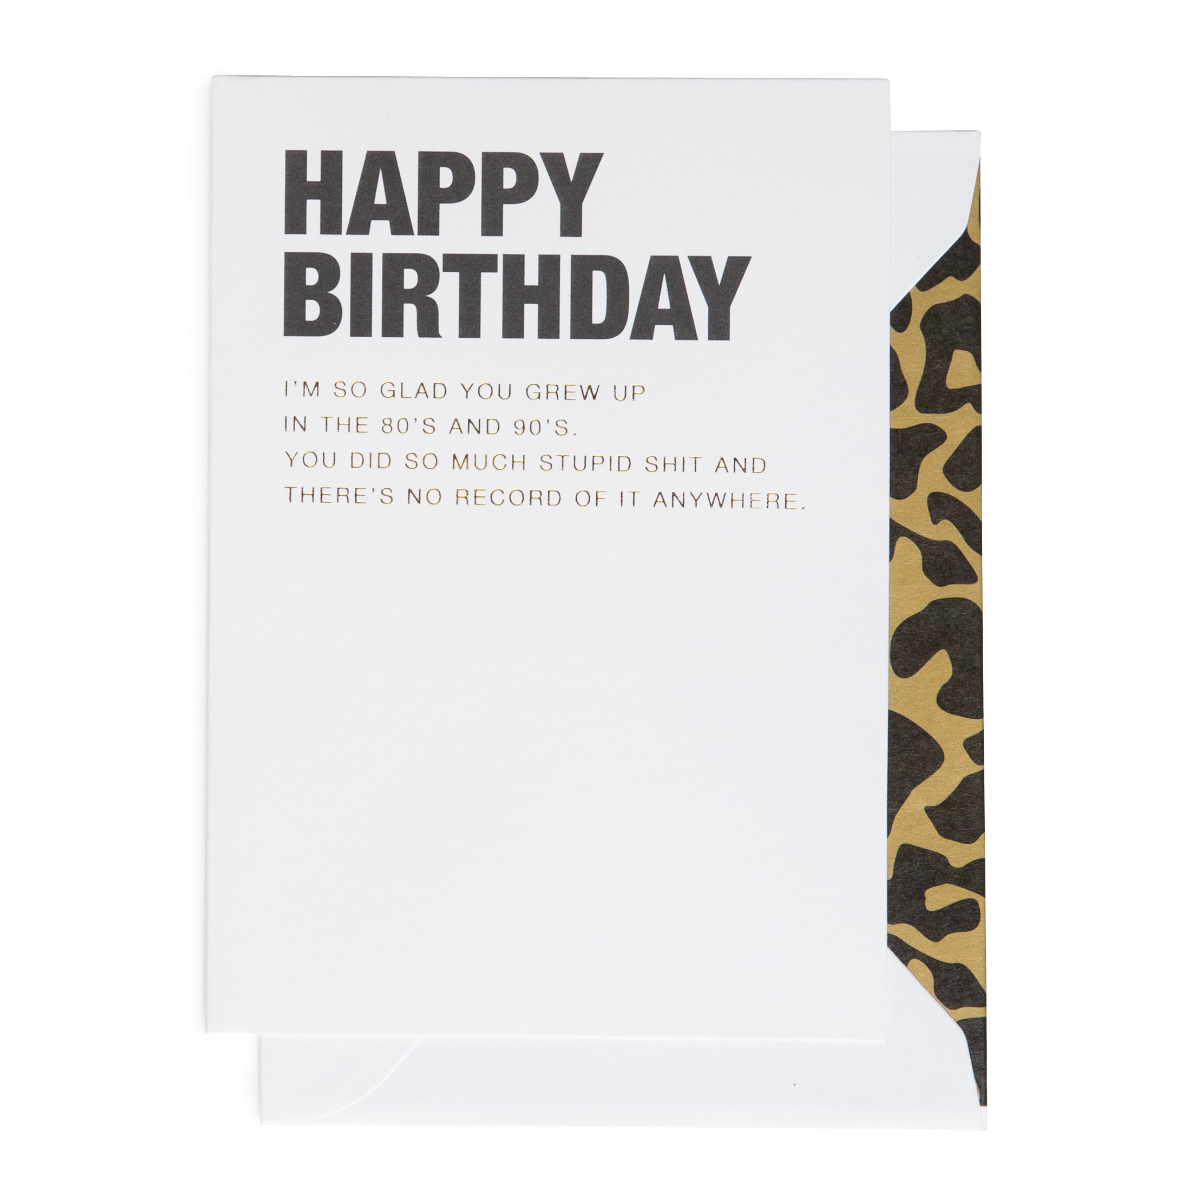 Cardsome   Cards - Happy Birthday 80s & 90s